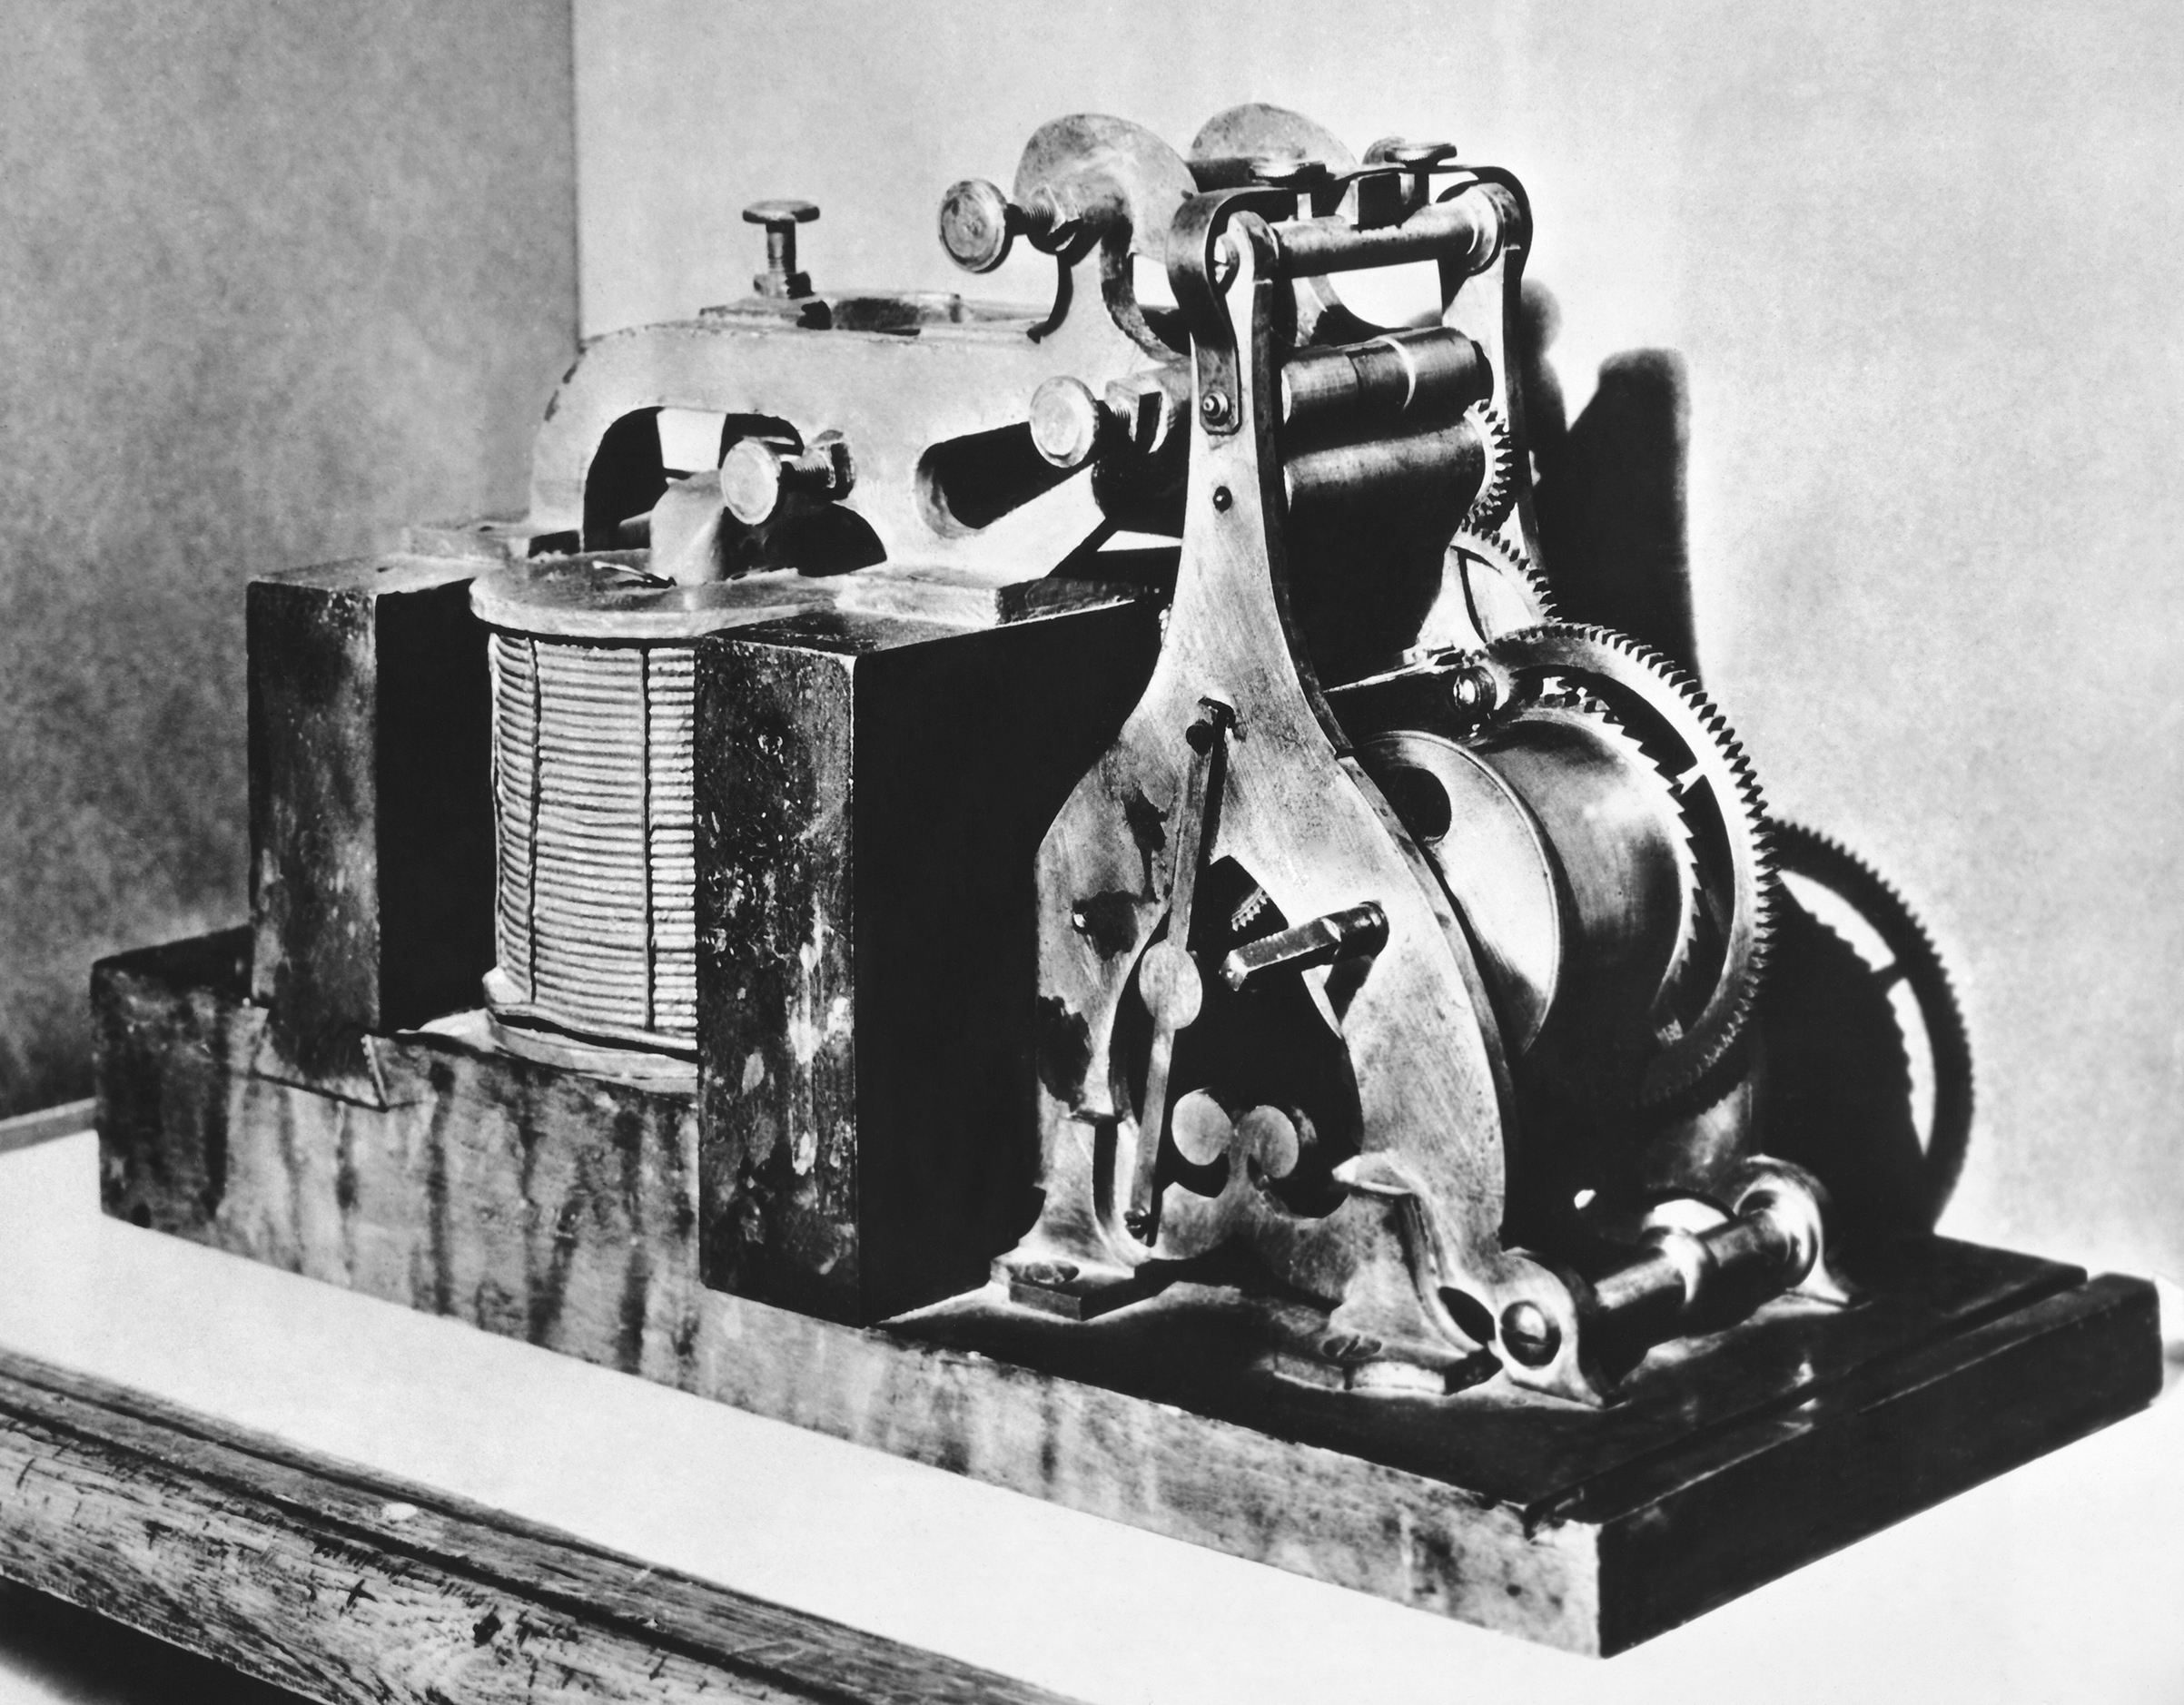 The original Morse telegraph receiver on which 'What Hath God Wrought?' (received on May 24, 1844).